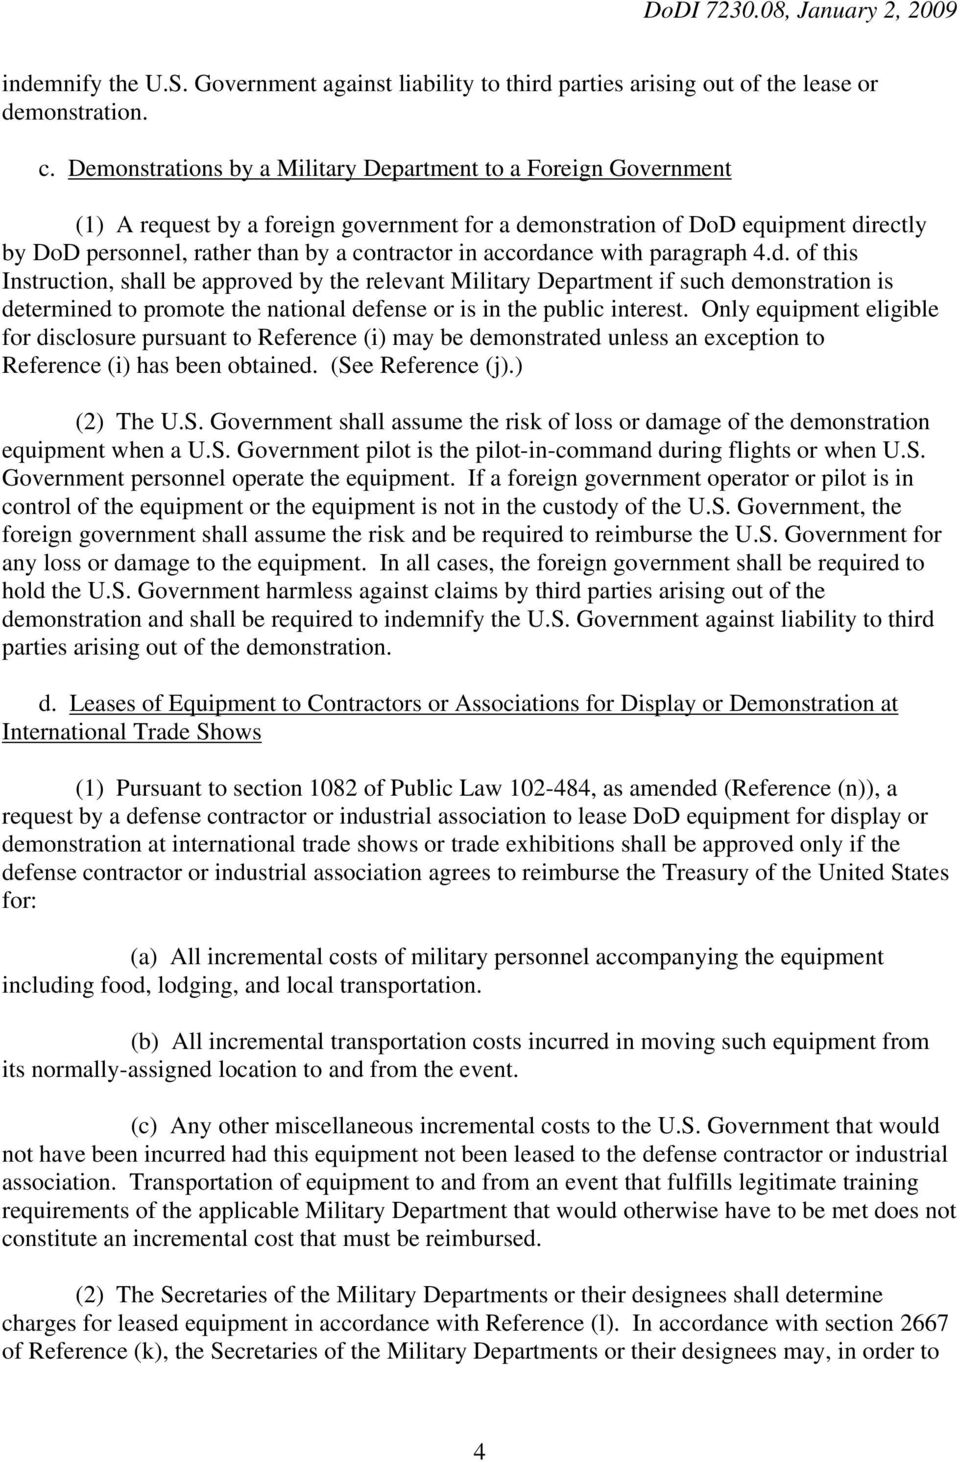 accordance with paragraph 4.d. of this Instruction, shall be approved by the relevant Military Department if such demonstration is determined to promote the national defense or is in the public interest.